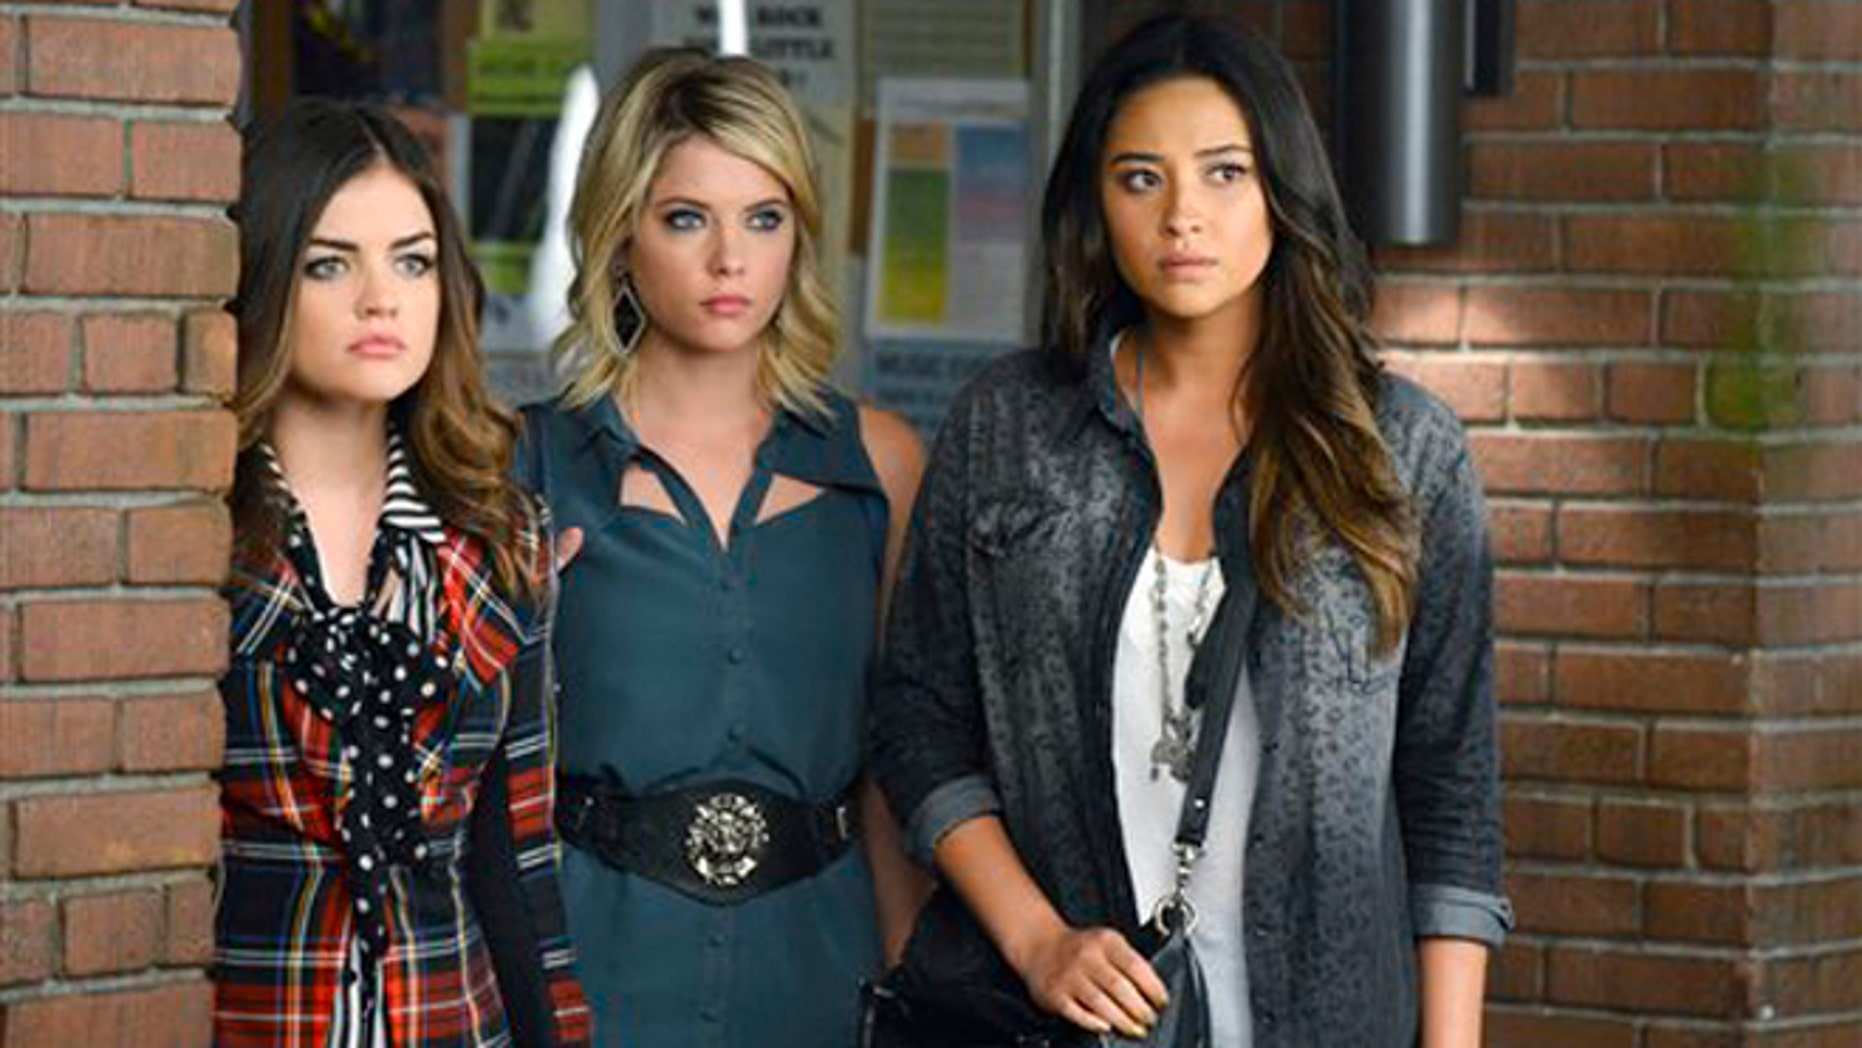 """This publicity image released by ABC Family shows, from left, Lucy Hale, Ashley Benson and Shay Mitchell in a scene from """"Pretty Little Liars.""""  On Tuesday, March 26, 2013, ABC Family approved a new series called """"Ravenswood,"""" a spin-off of """"Pretty Little Liars."""" (AP Photo/ABC Family, Eric McCandless)"""